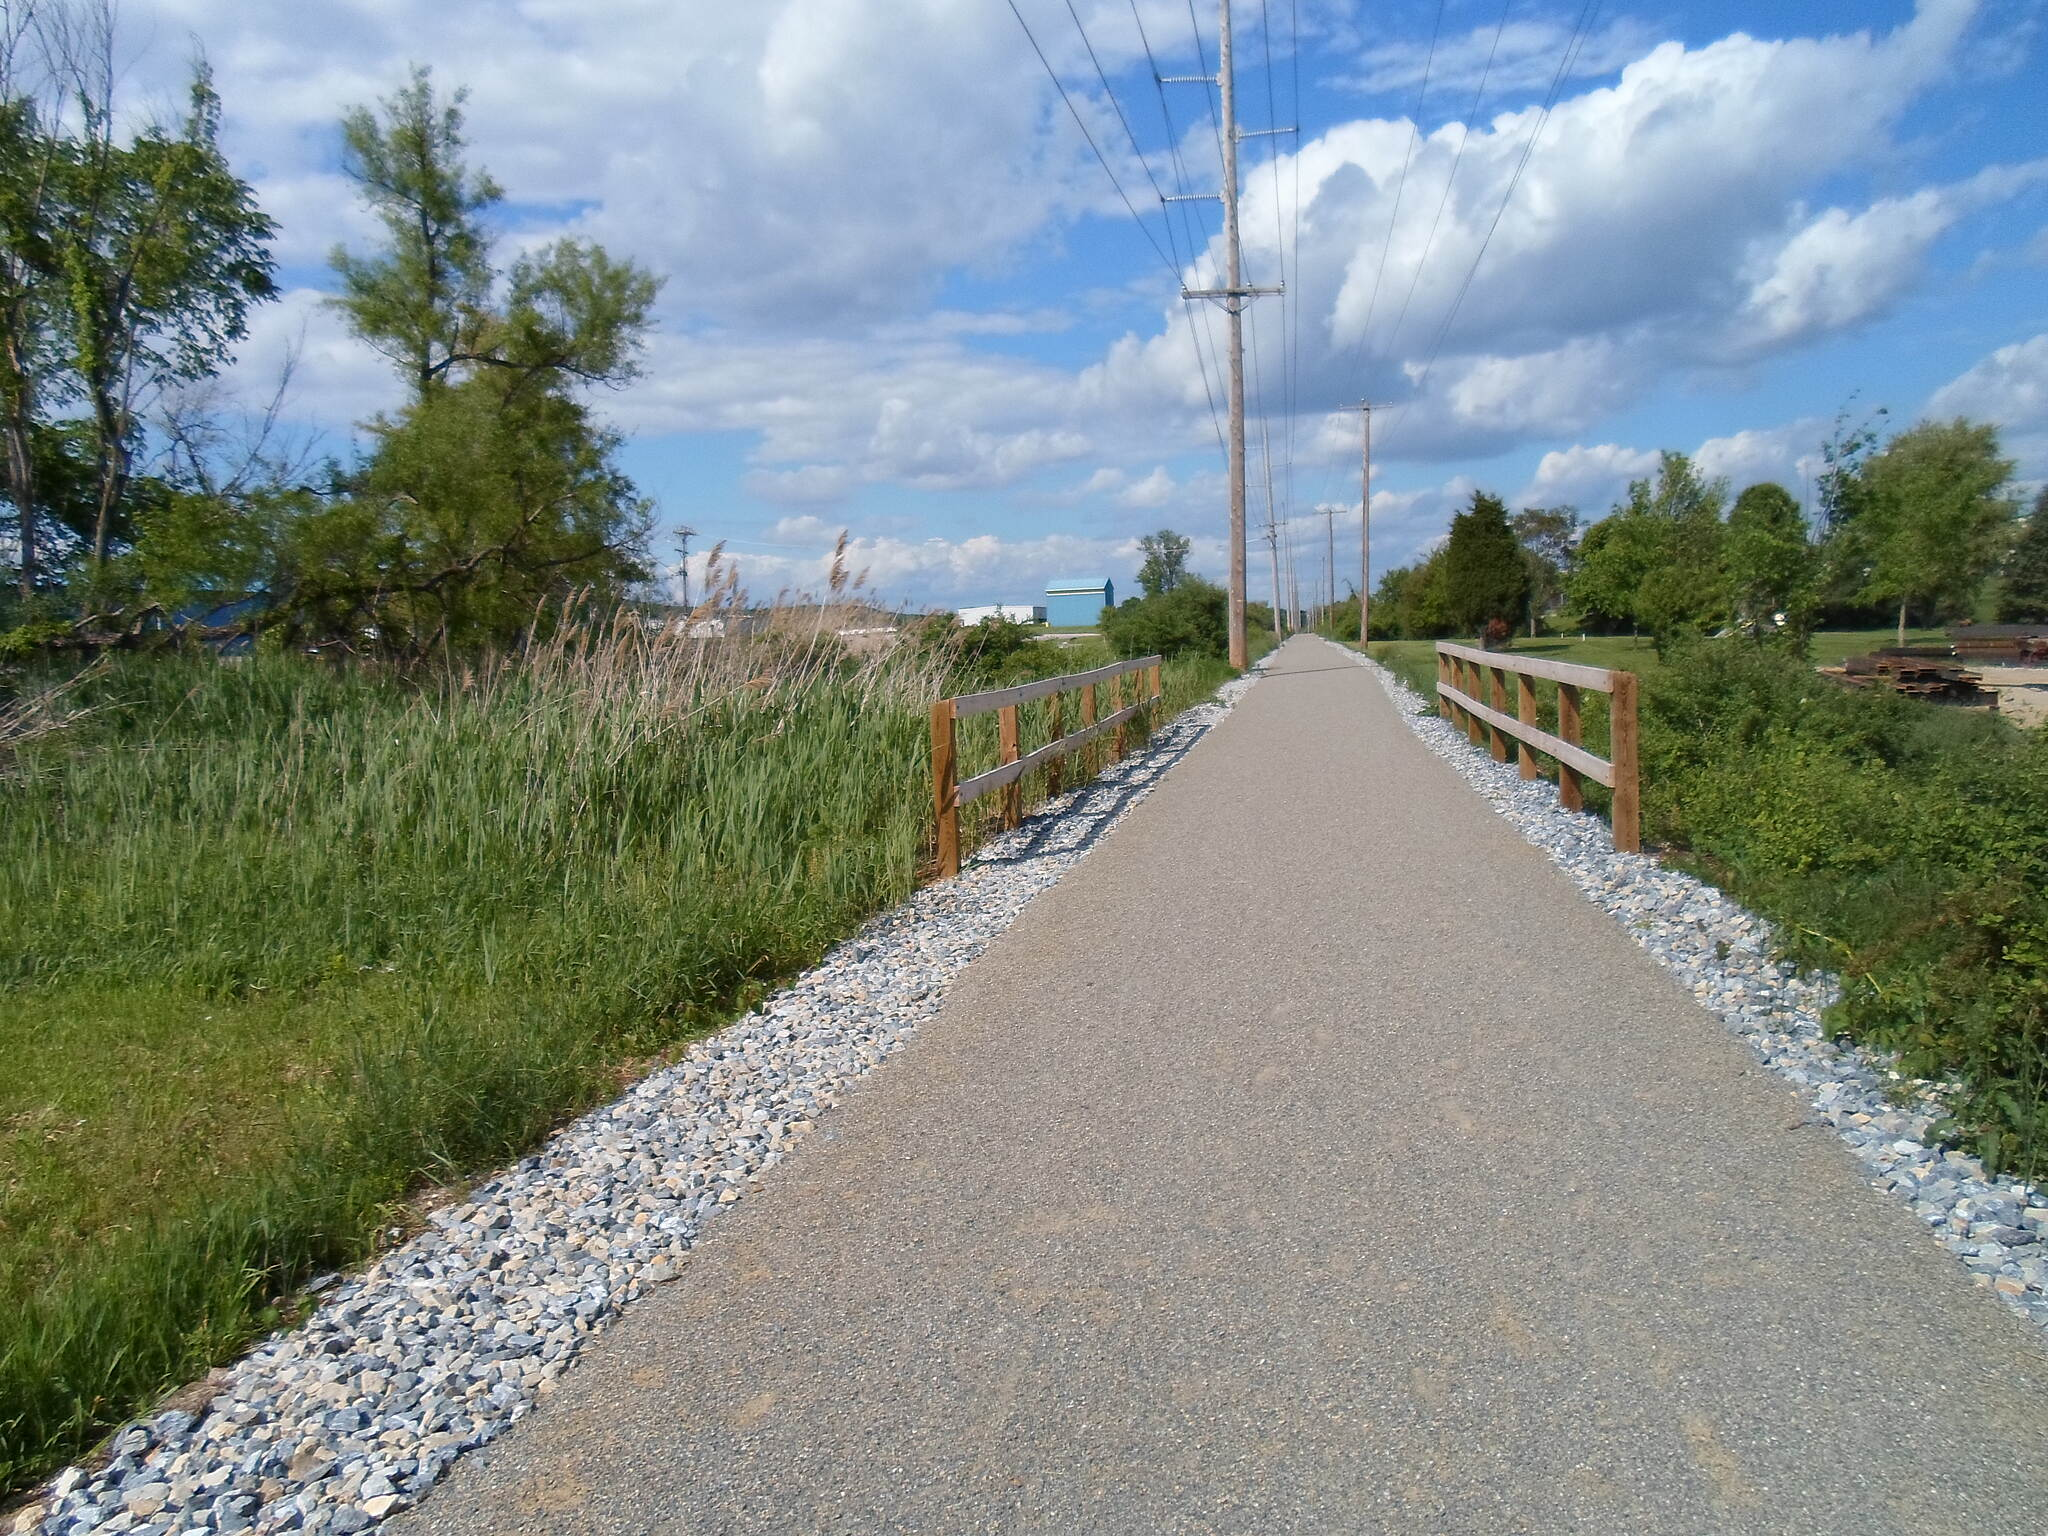 Hanover Trolley Trail Hanover Trolley Trail The trail is very straight for most of its length, which is a legacy of its days as a trolley line. This photo was taken in Penn Twp. on a warm, sunny day in May 2014.